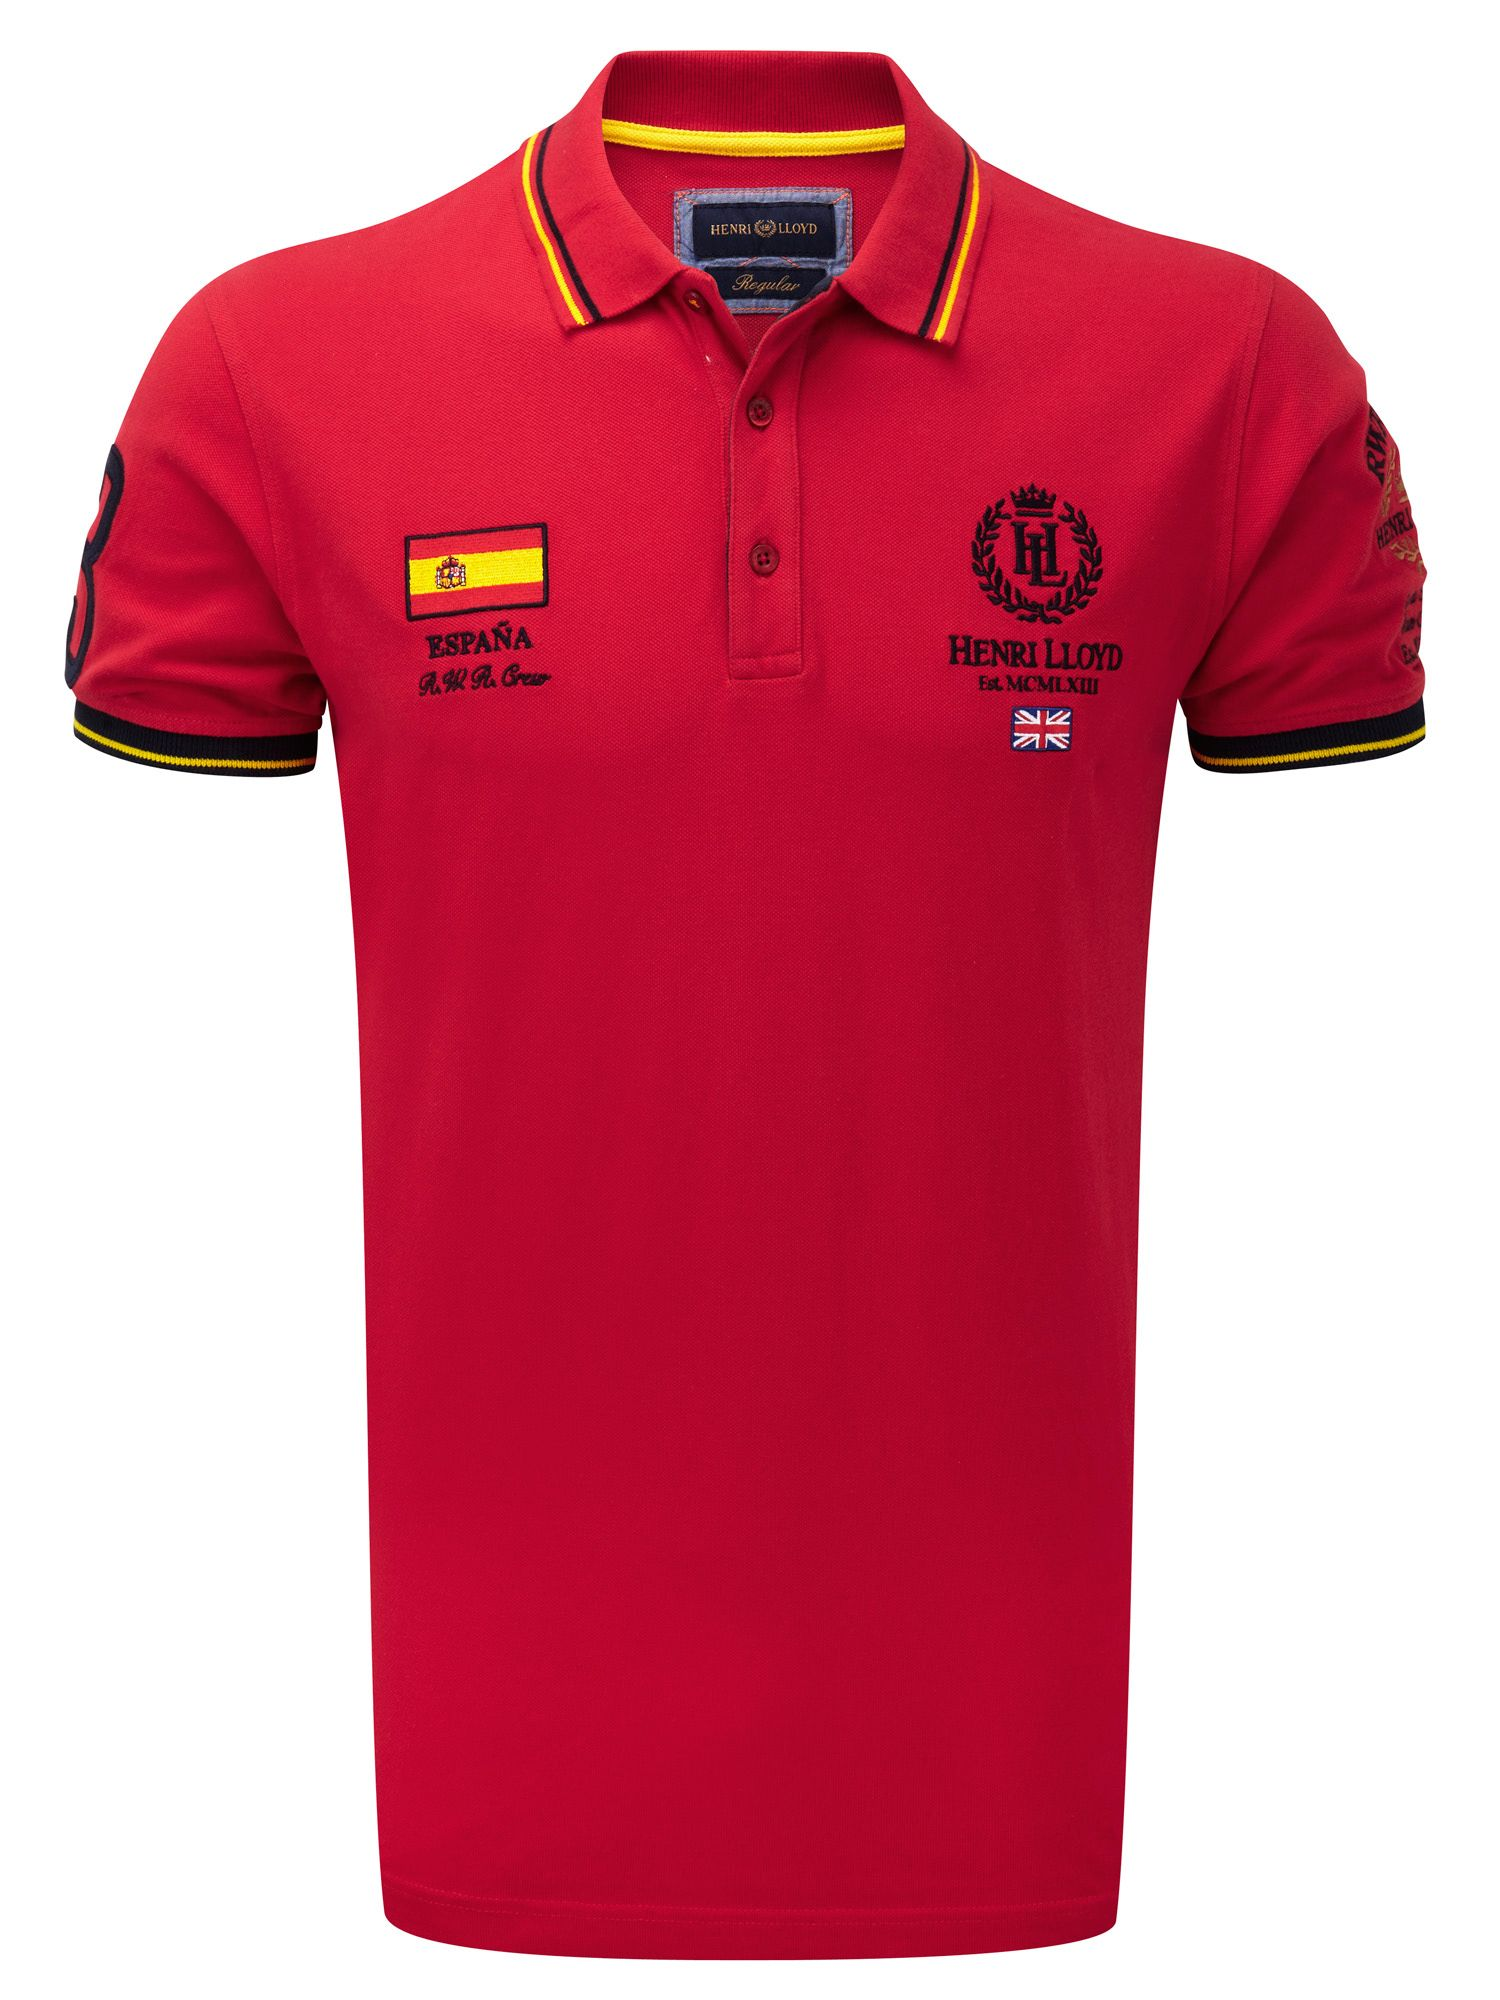 Espana rwr polo shirt